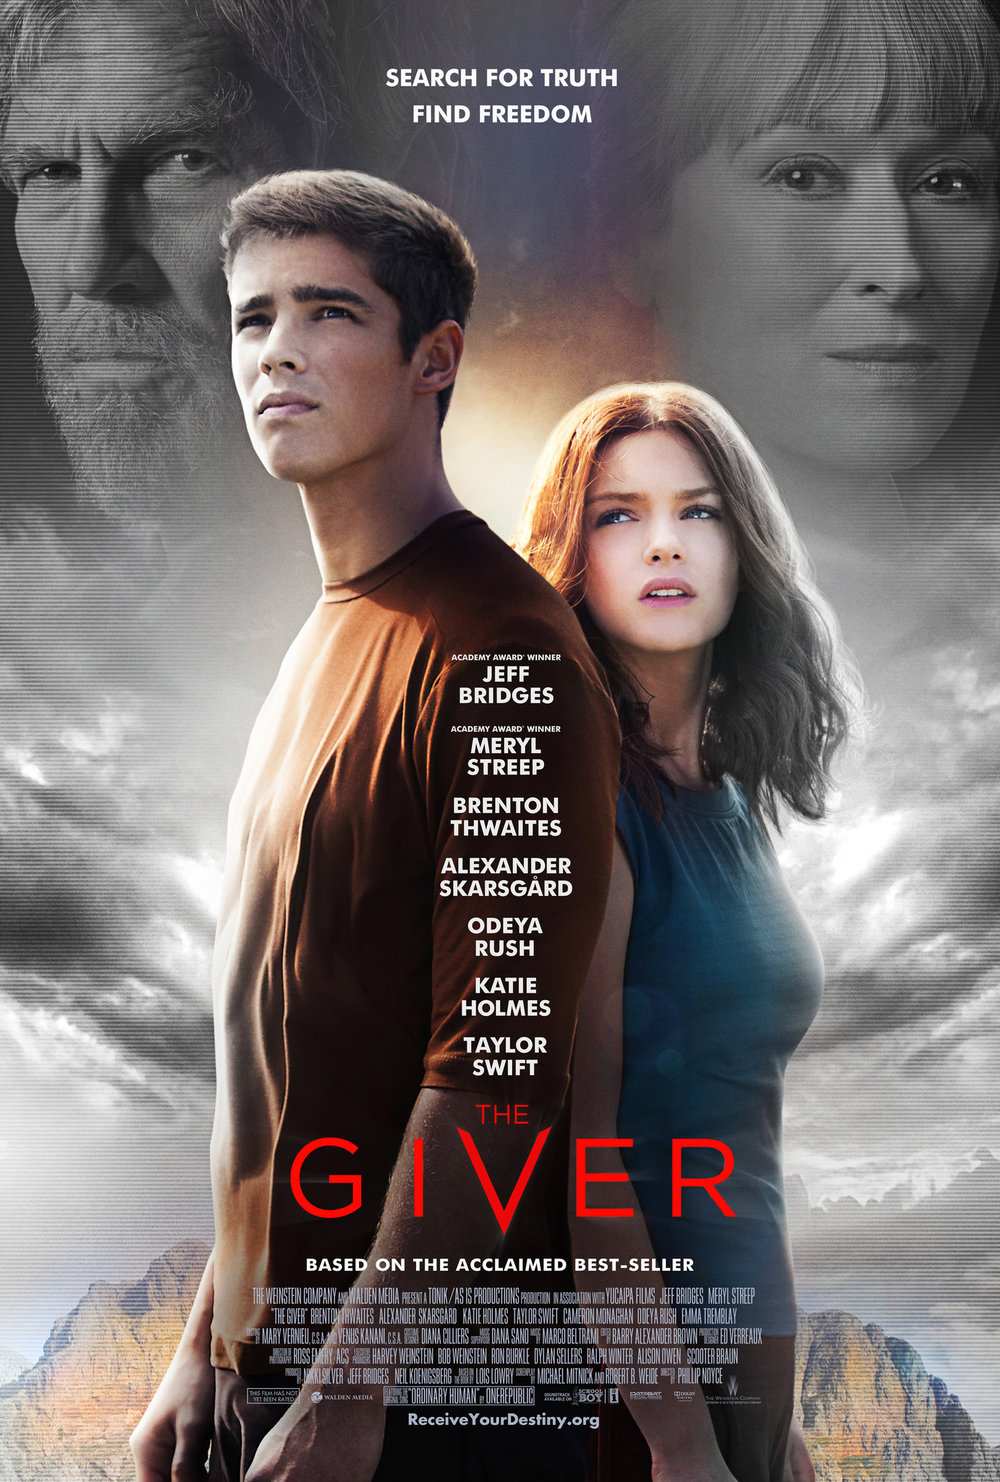 Episode 12: The Giver - In a seemingly perfect community, without war, pain, suffering, differences or choice, a young boy is chosen to learn from an elderly man about the true pain and pleasure of the